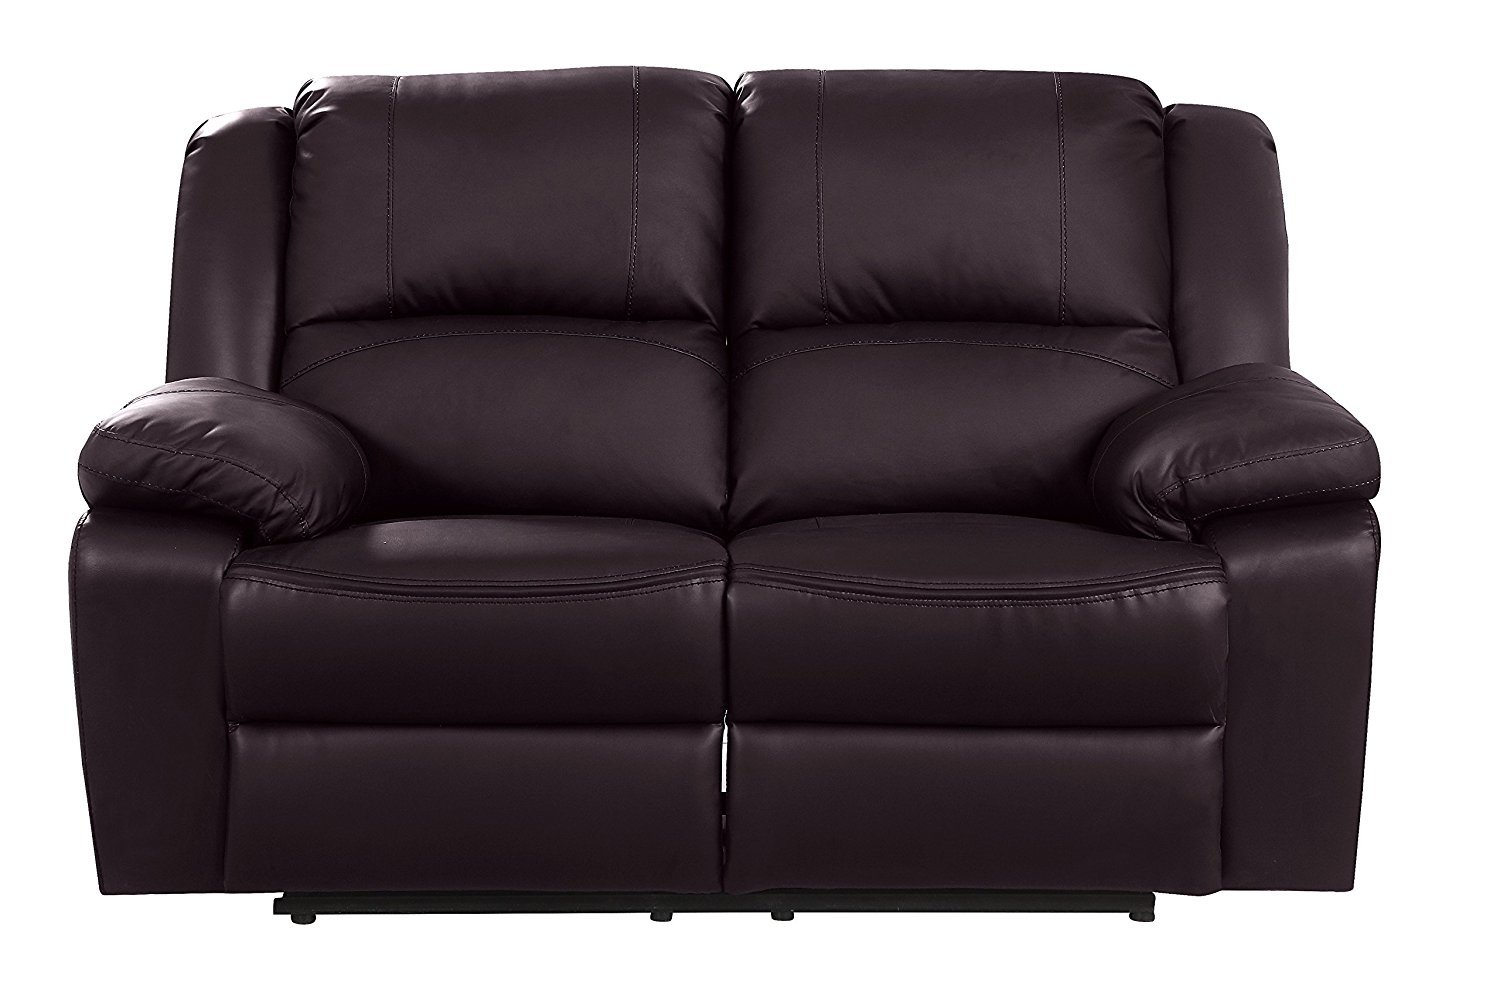 Details About Brown Modern Recliner Sofa 2 Seater Overstuffed Loveseat Living Room